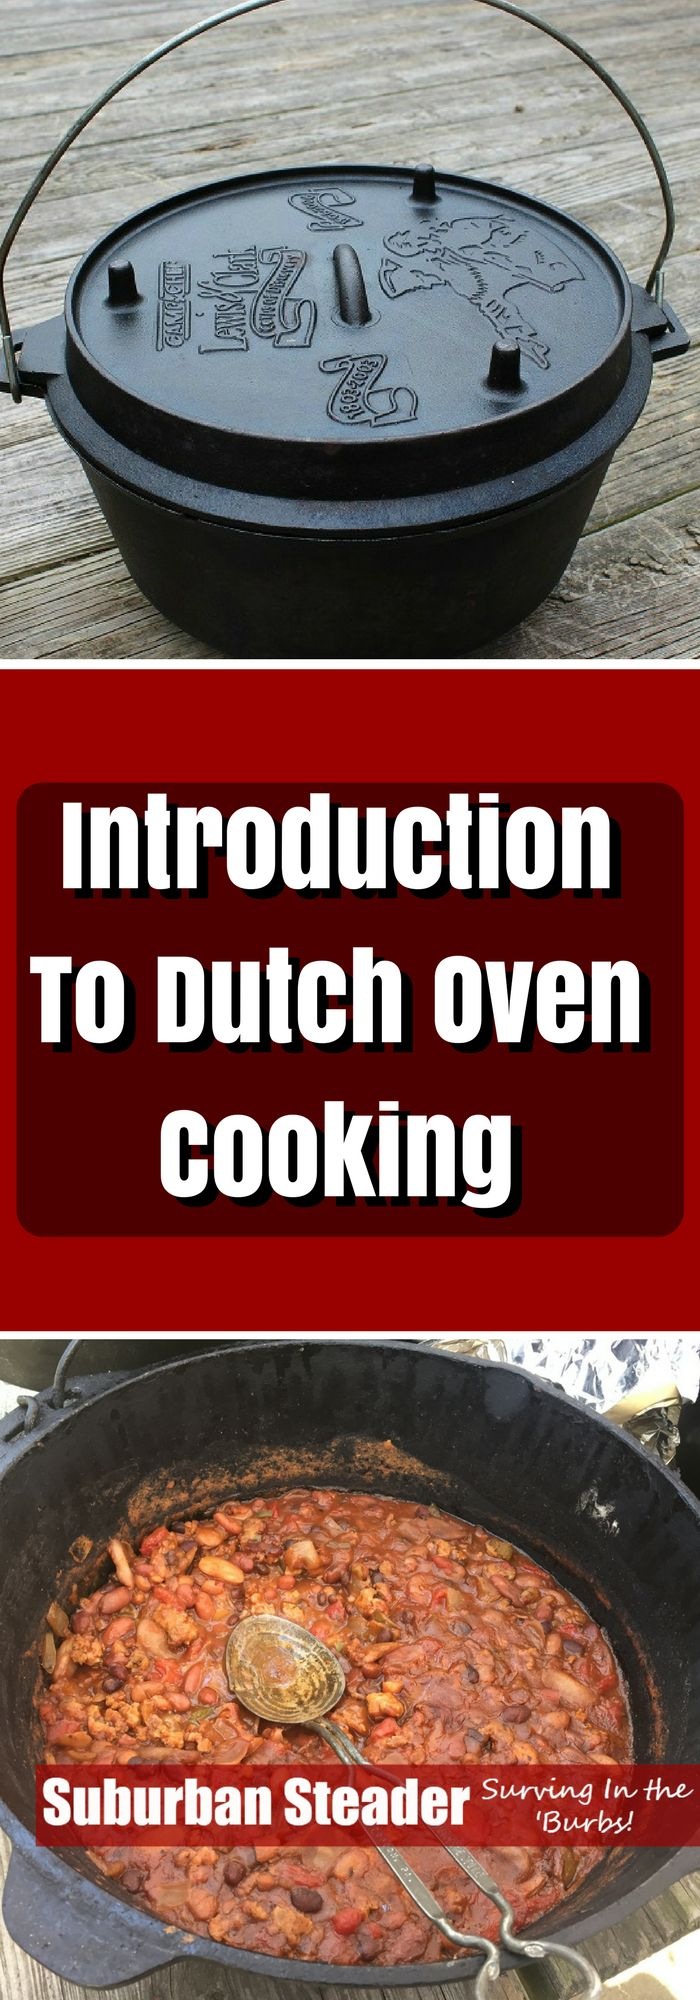 271 best dutch oven cooking images on pinterest camping for What to cook in a dutch oven camping